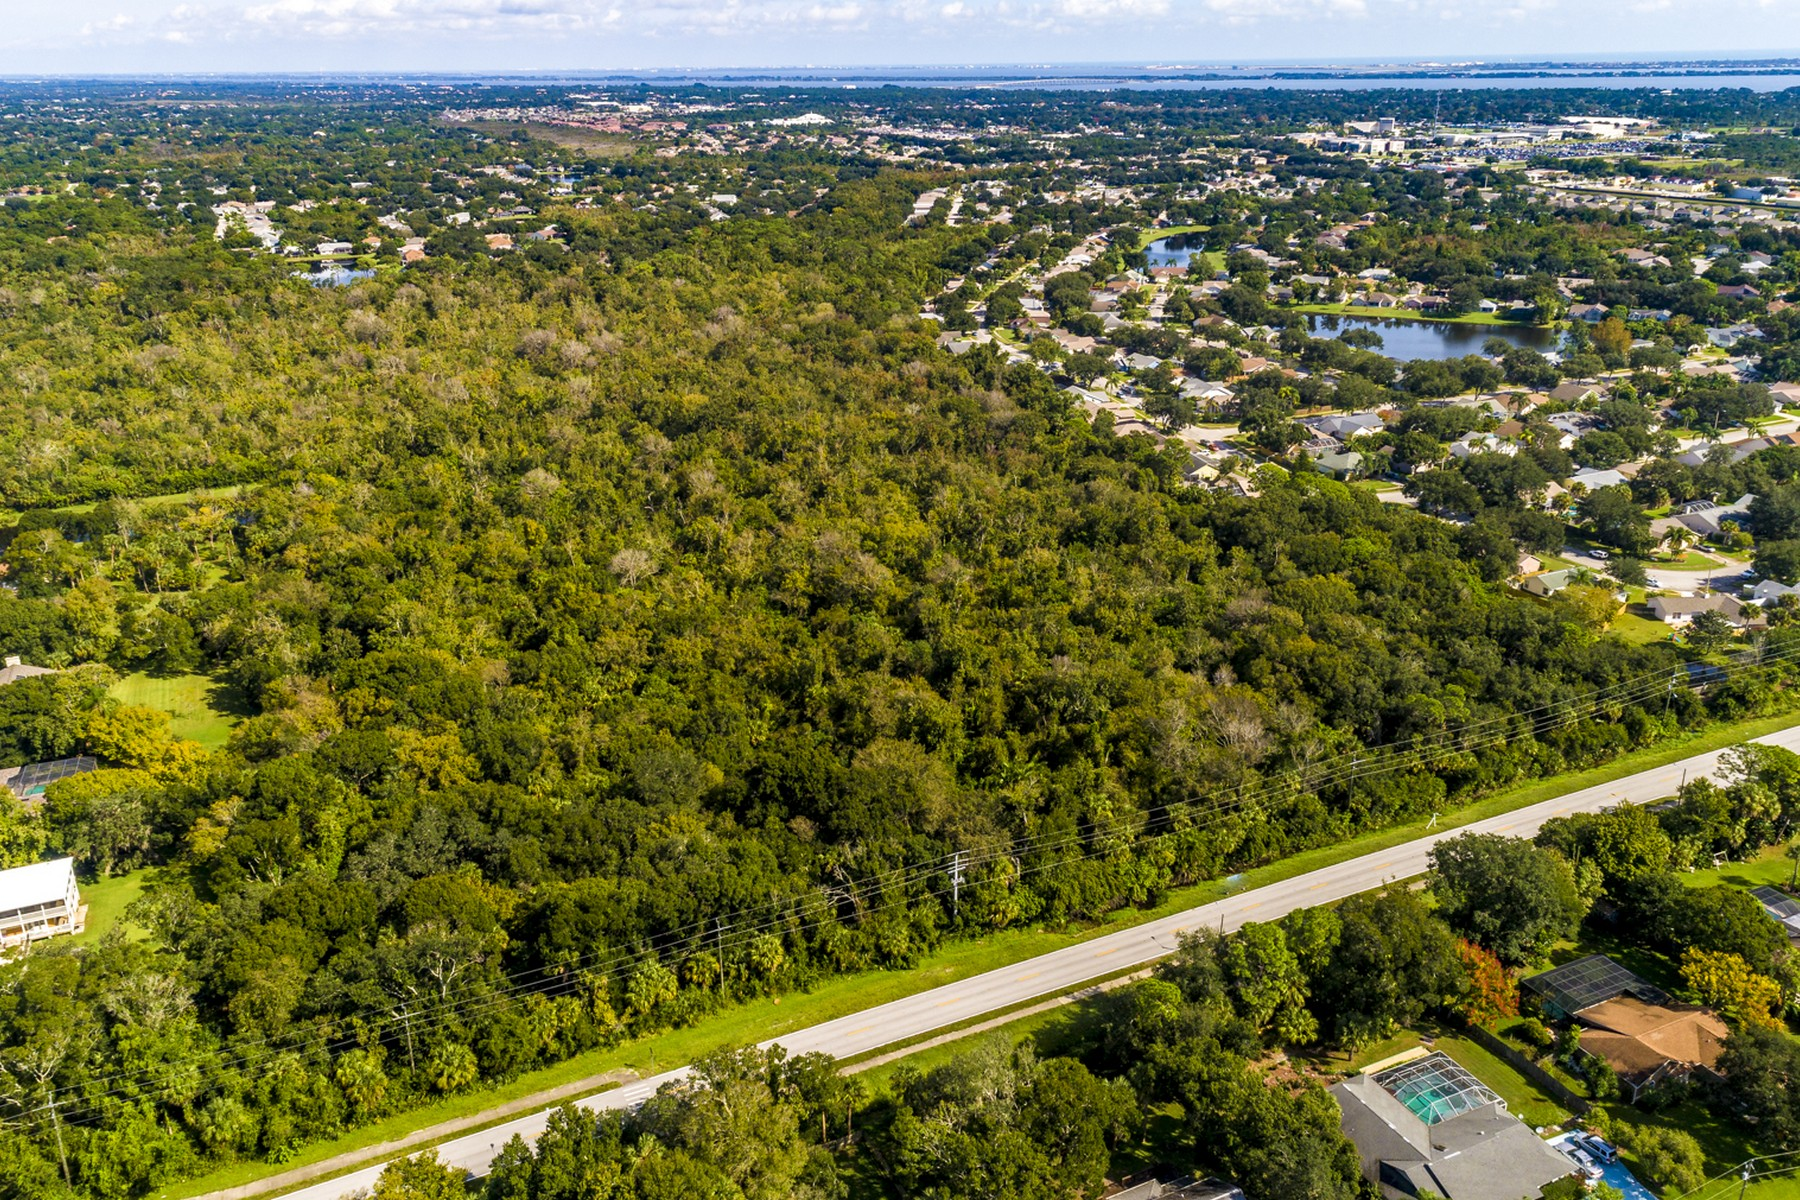 Property vì Bán tại Thirty Nine Acres in Desireable Location in Melbourne 0000 Parkway Drive Melbourne, Florida 32934 Hoa Kỳ